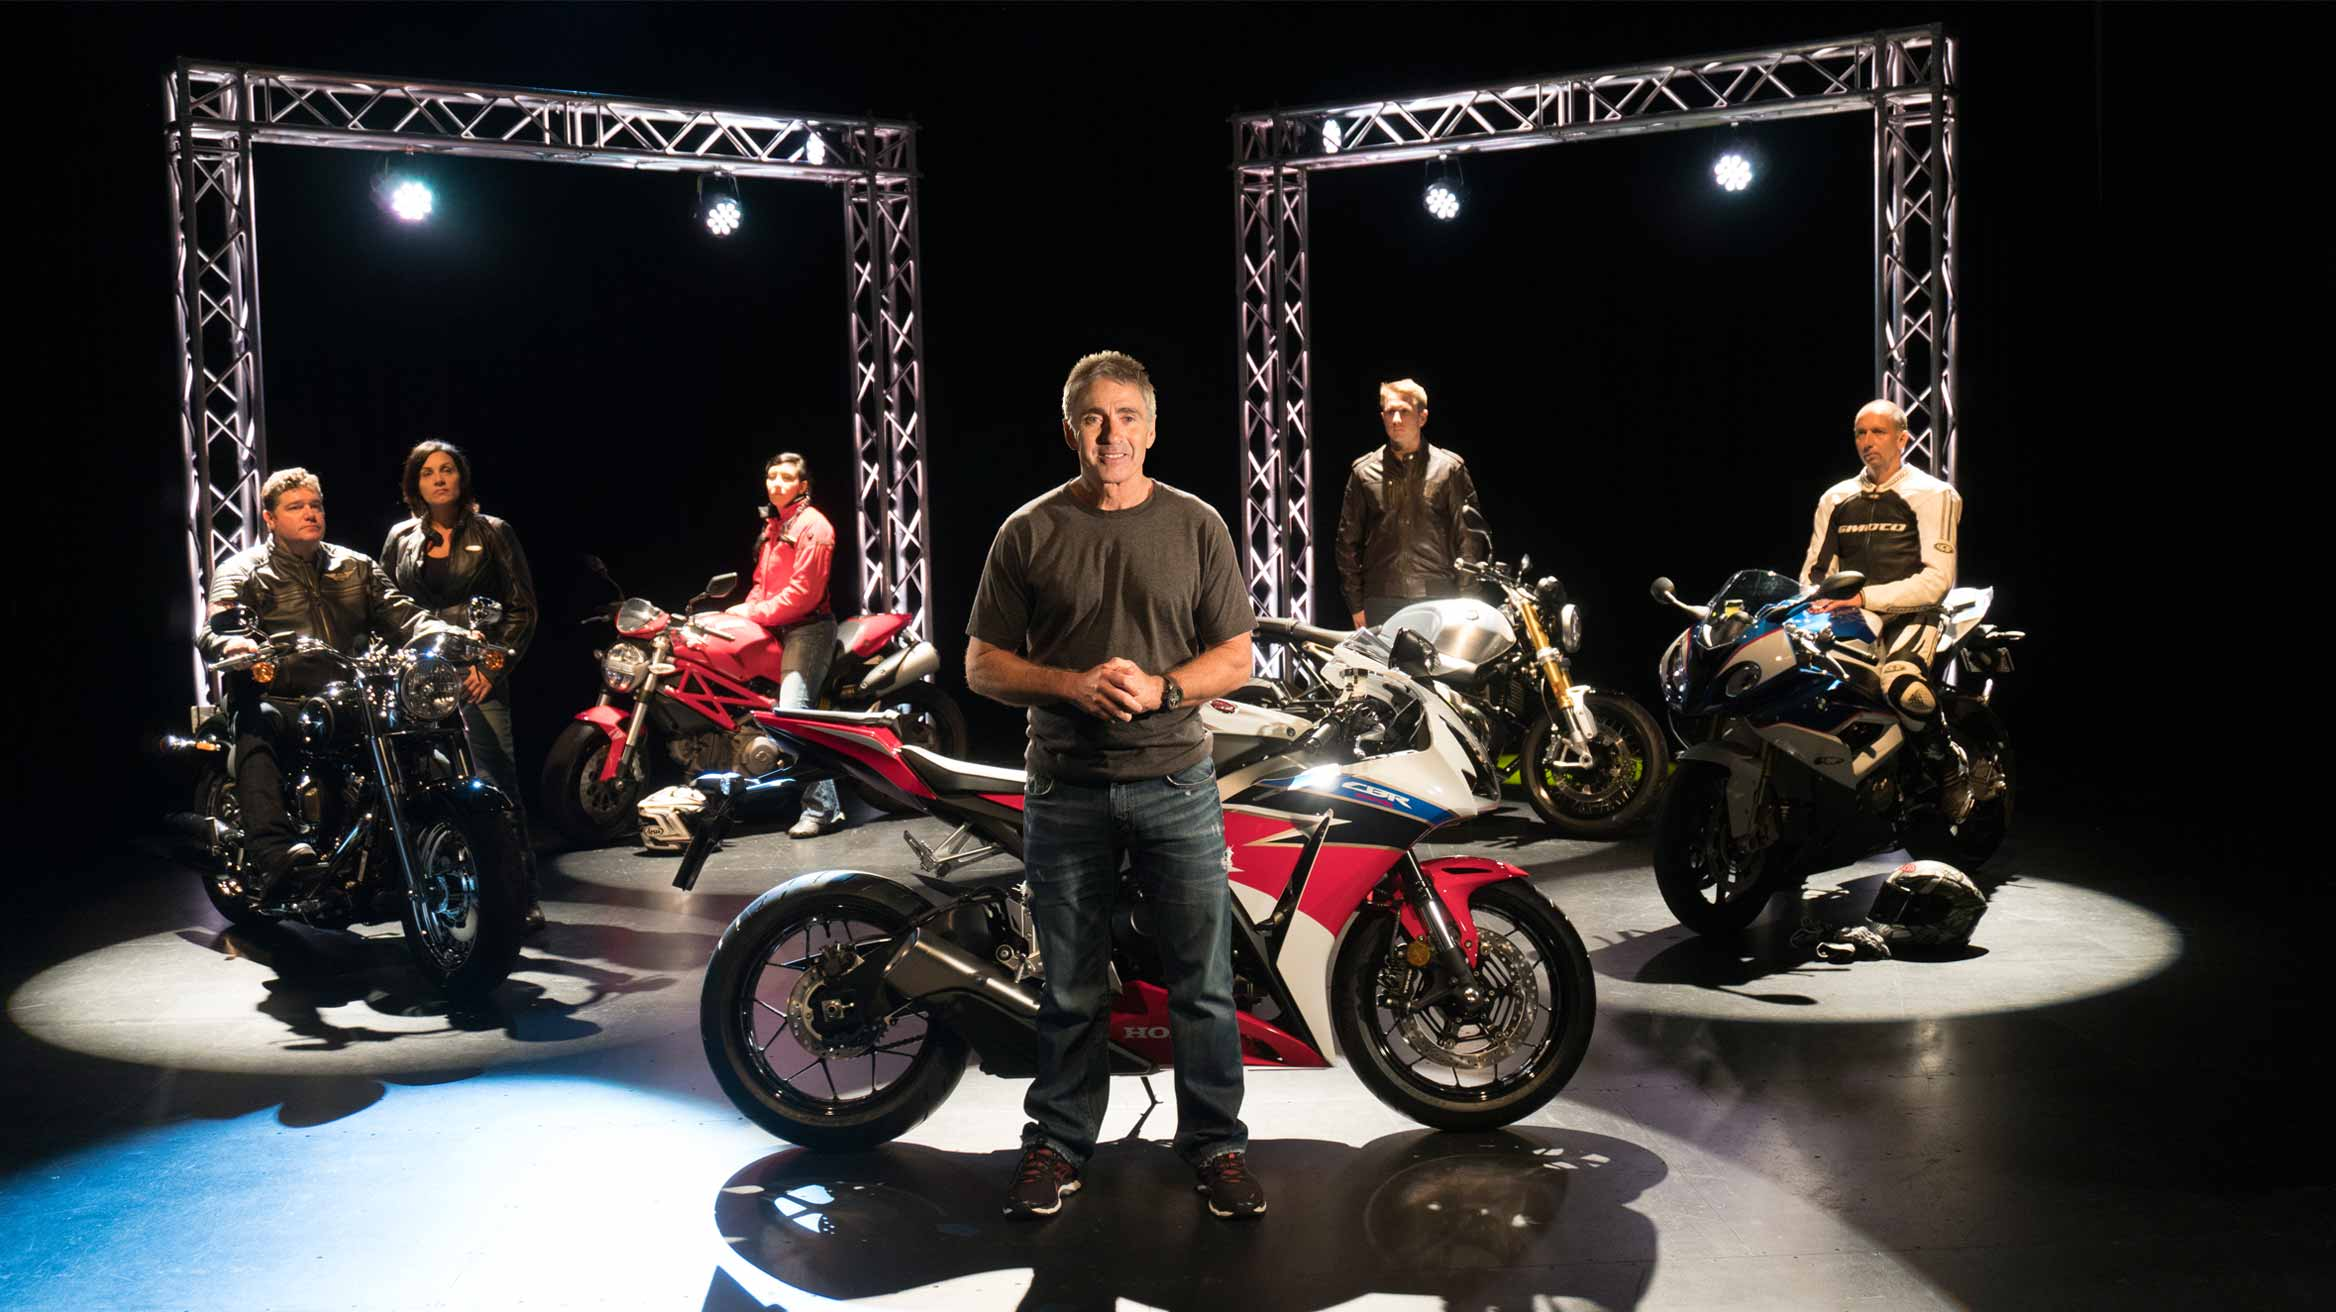 join the drive mick doohan standing infront of a motorcycle in a studio filled lights and other various watch what is